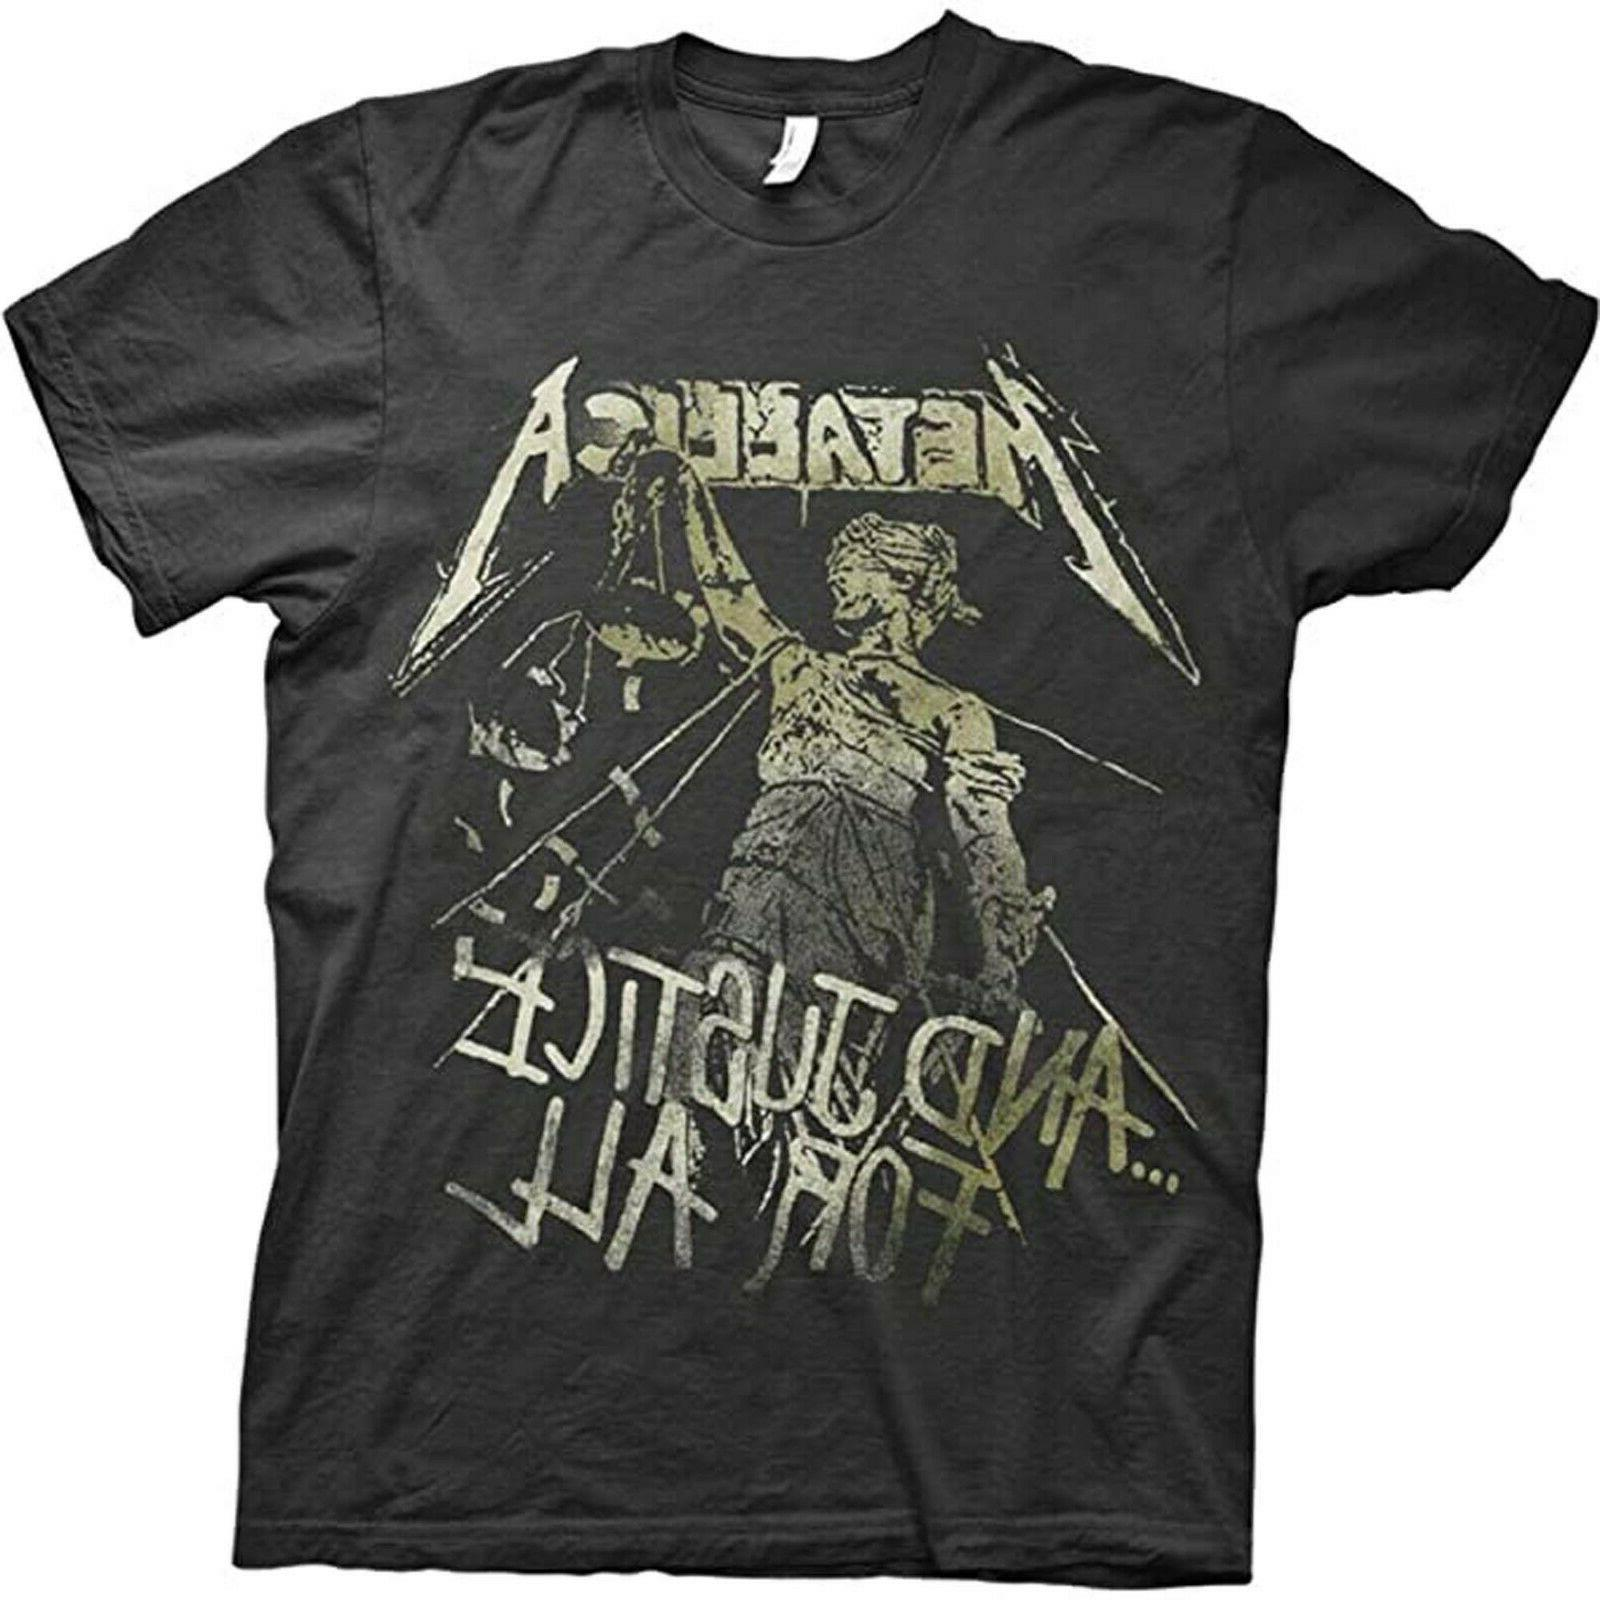 vintage justice for all t shirt new